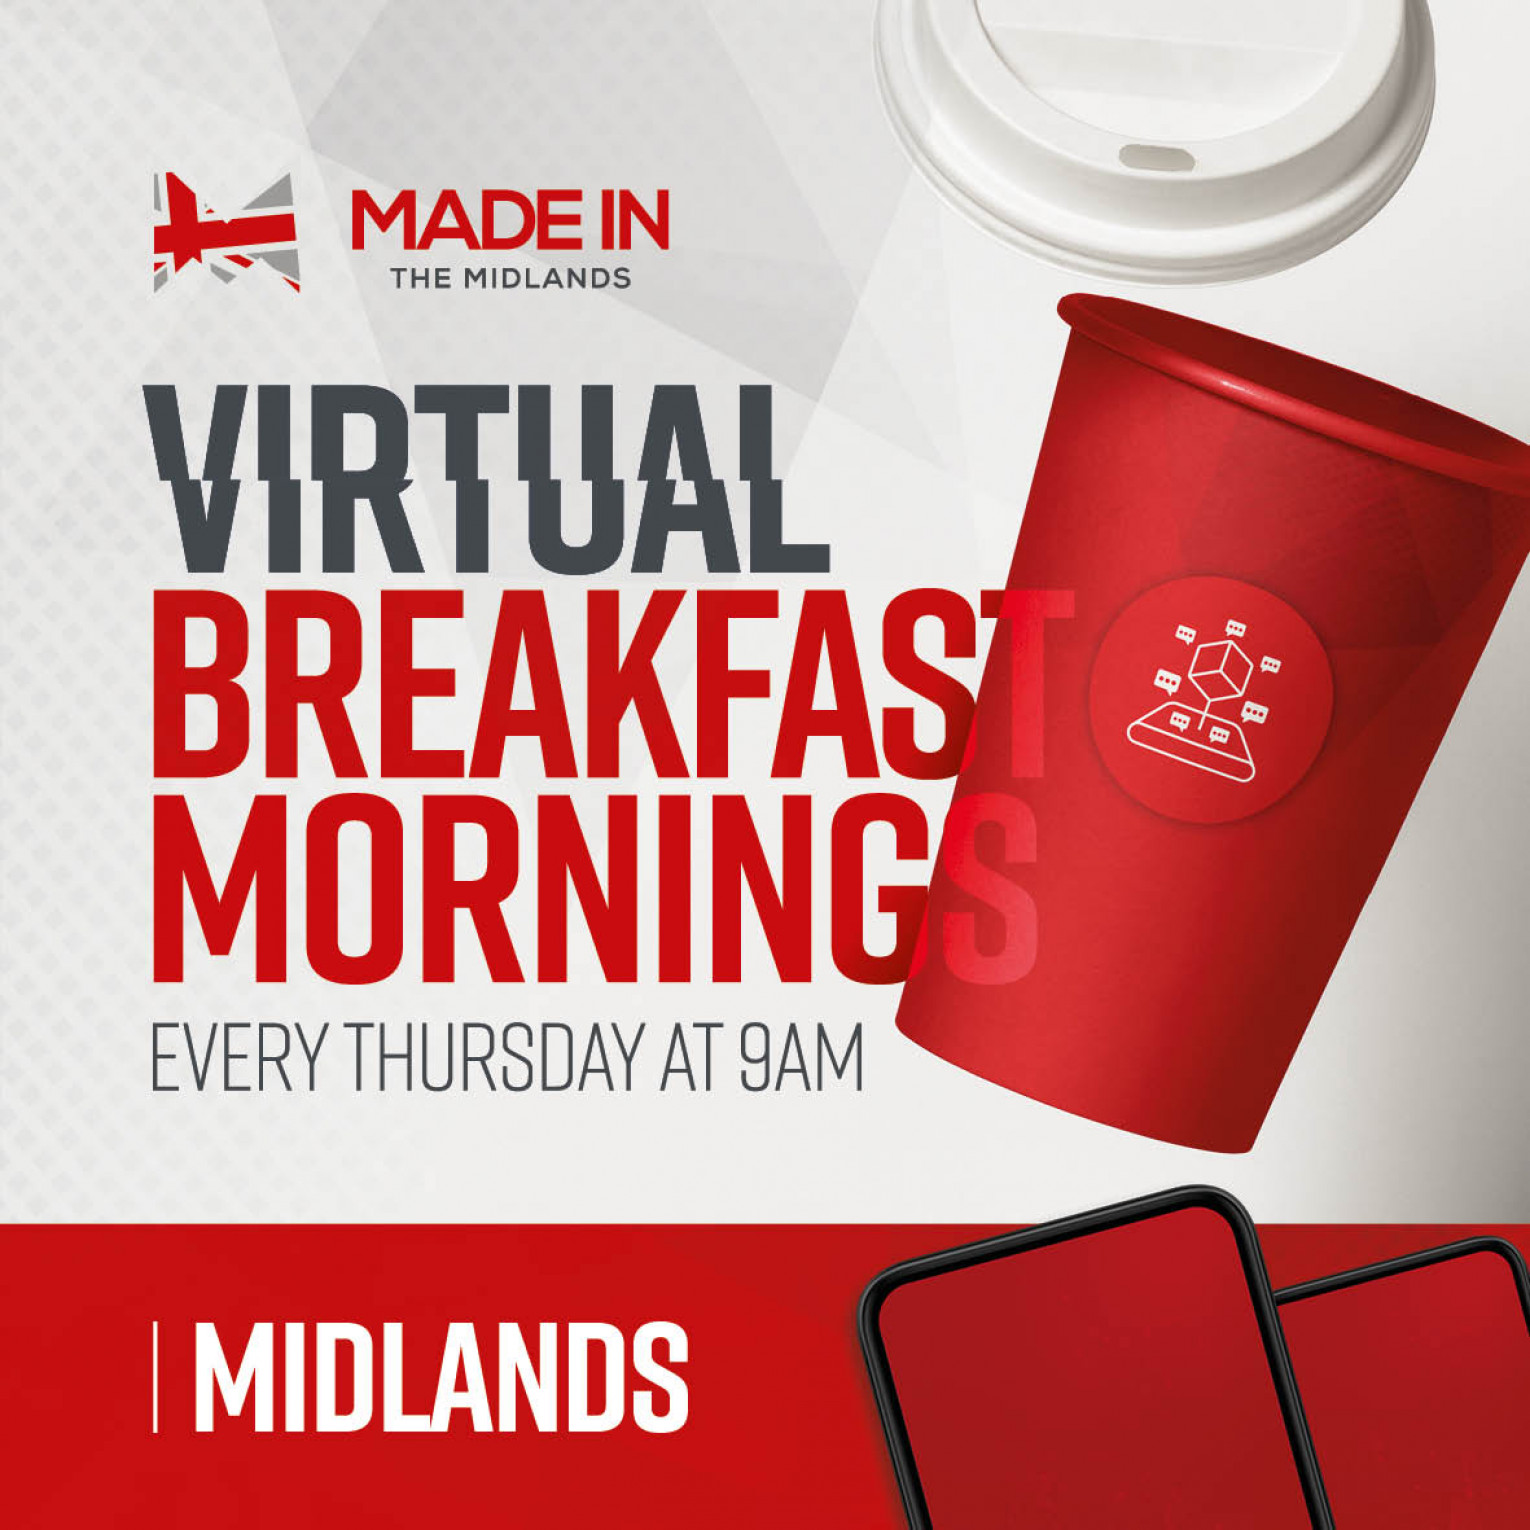 Made in the Midlands Virtual Breakfast Morning with Swiss Steel